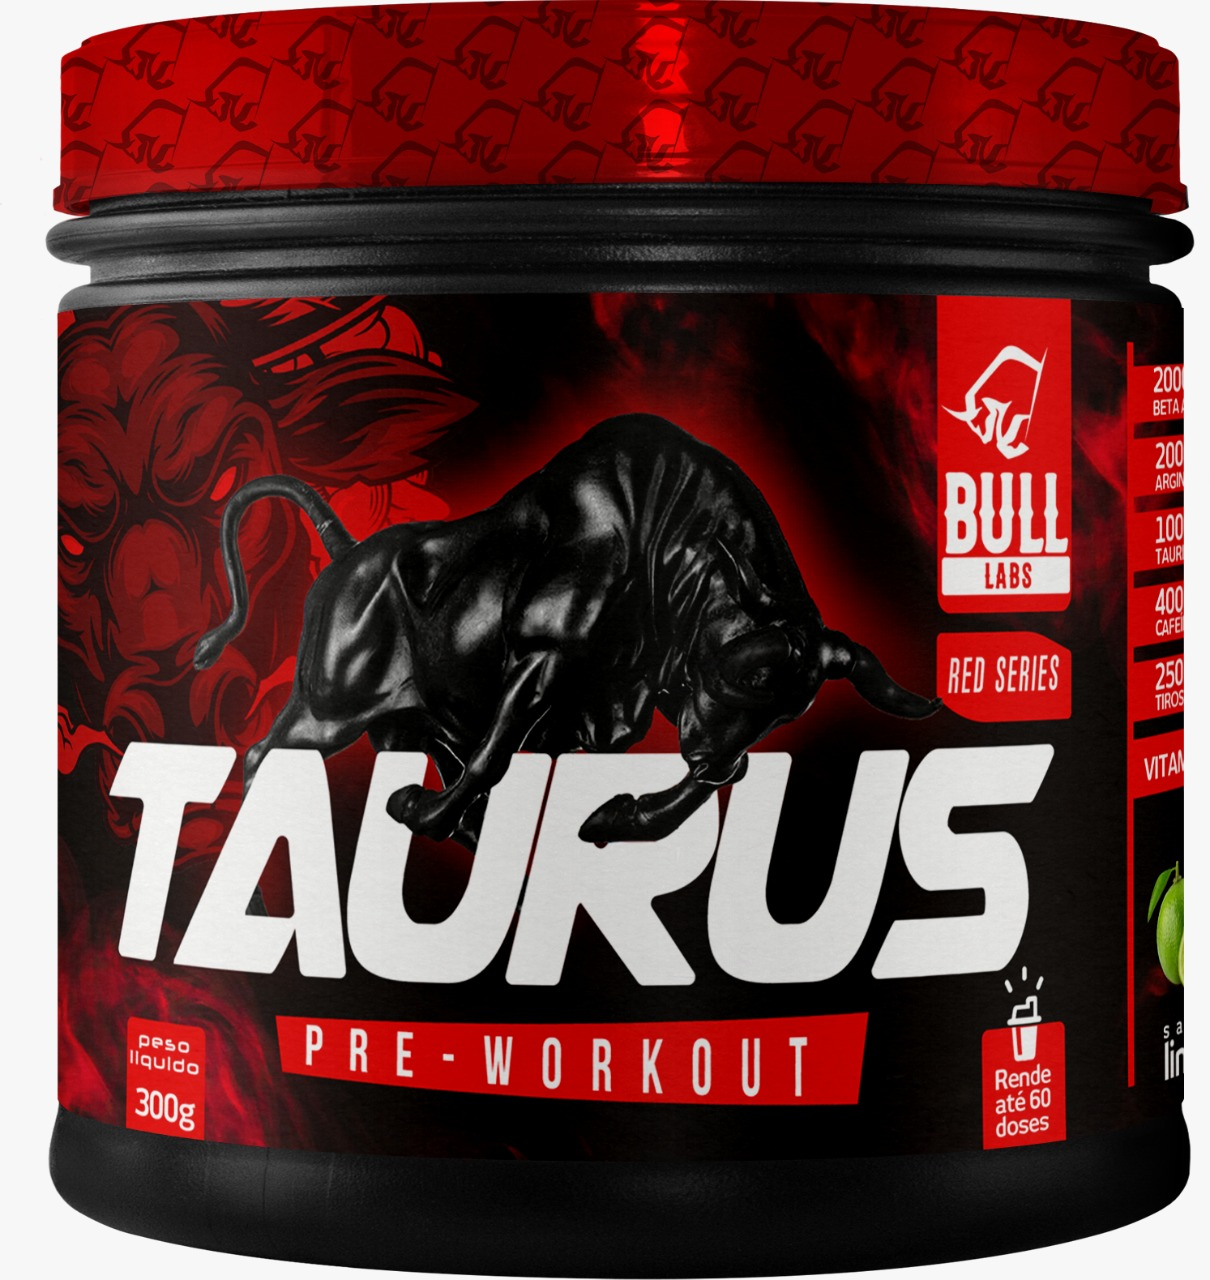 TAURUS PRE-WORKOUT 300G - BULL LABS